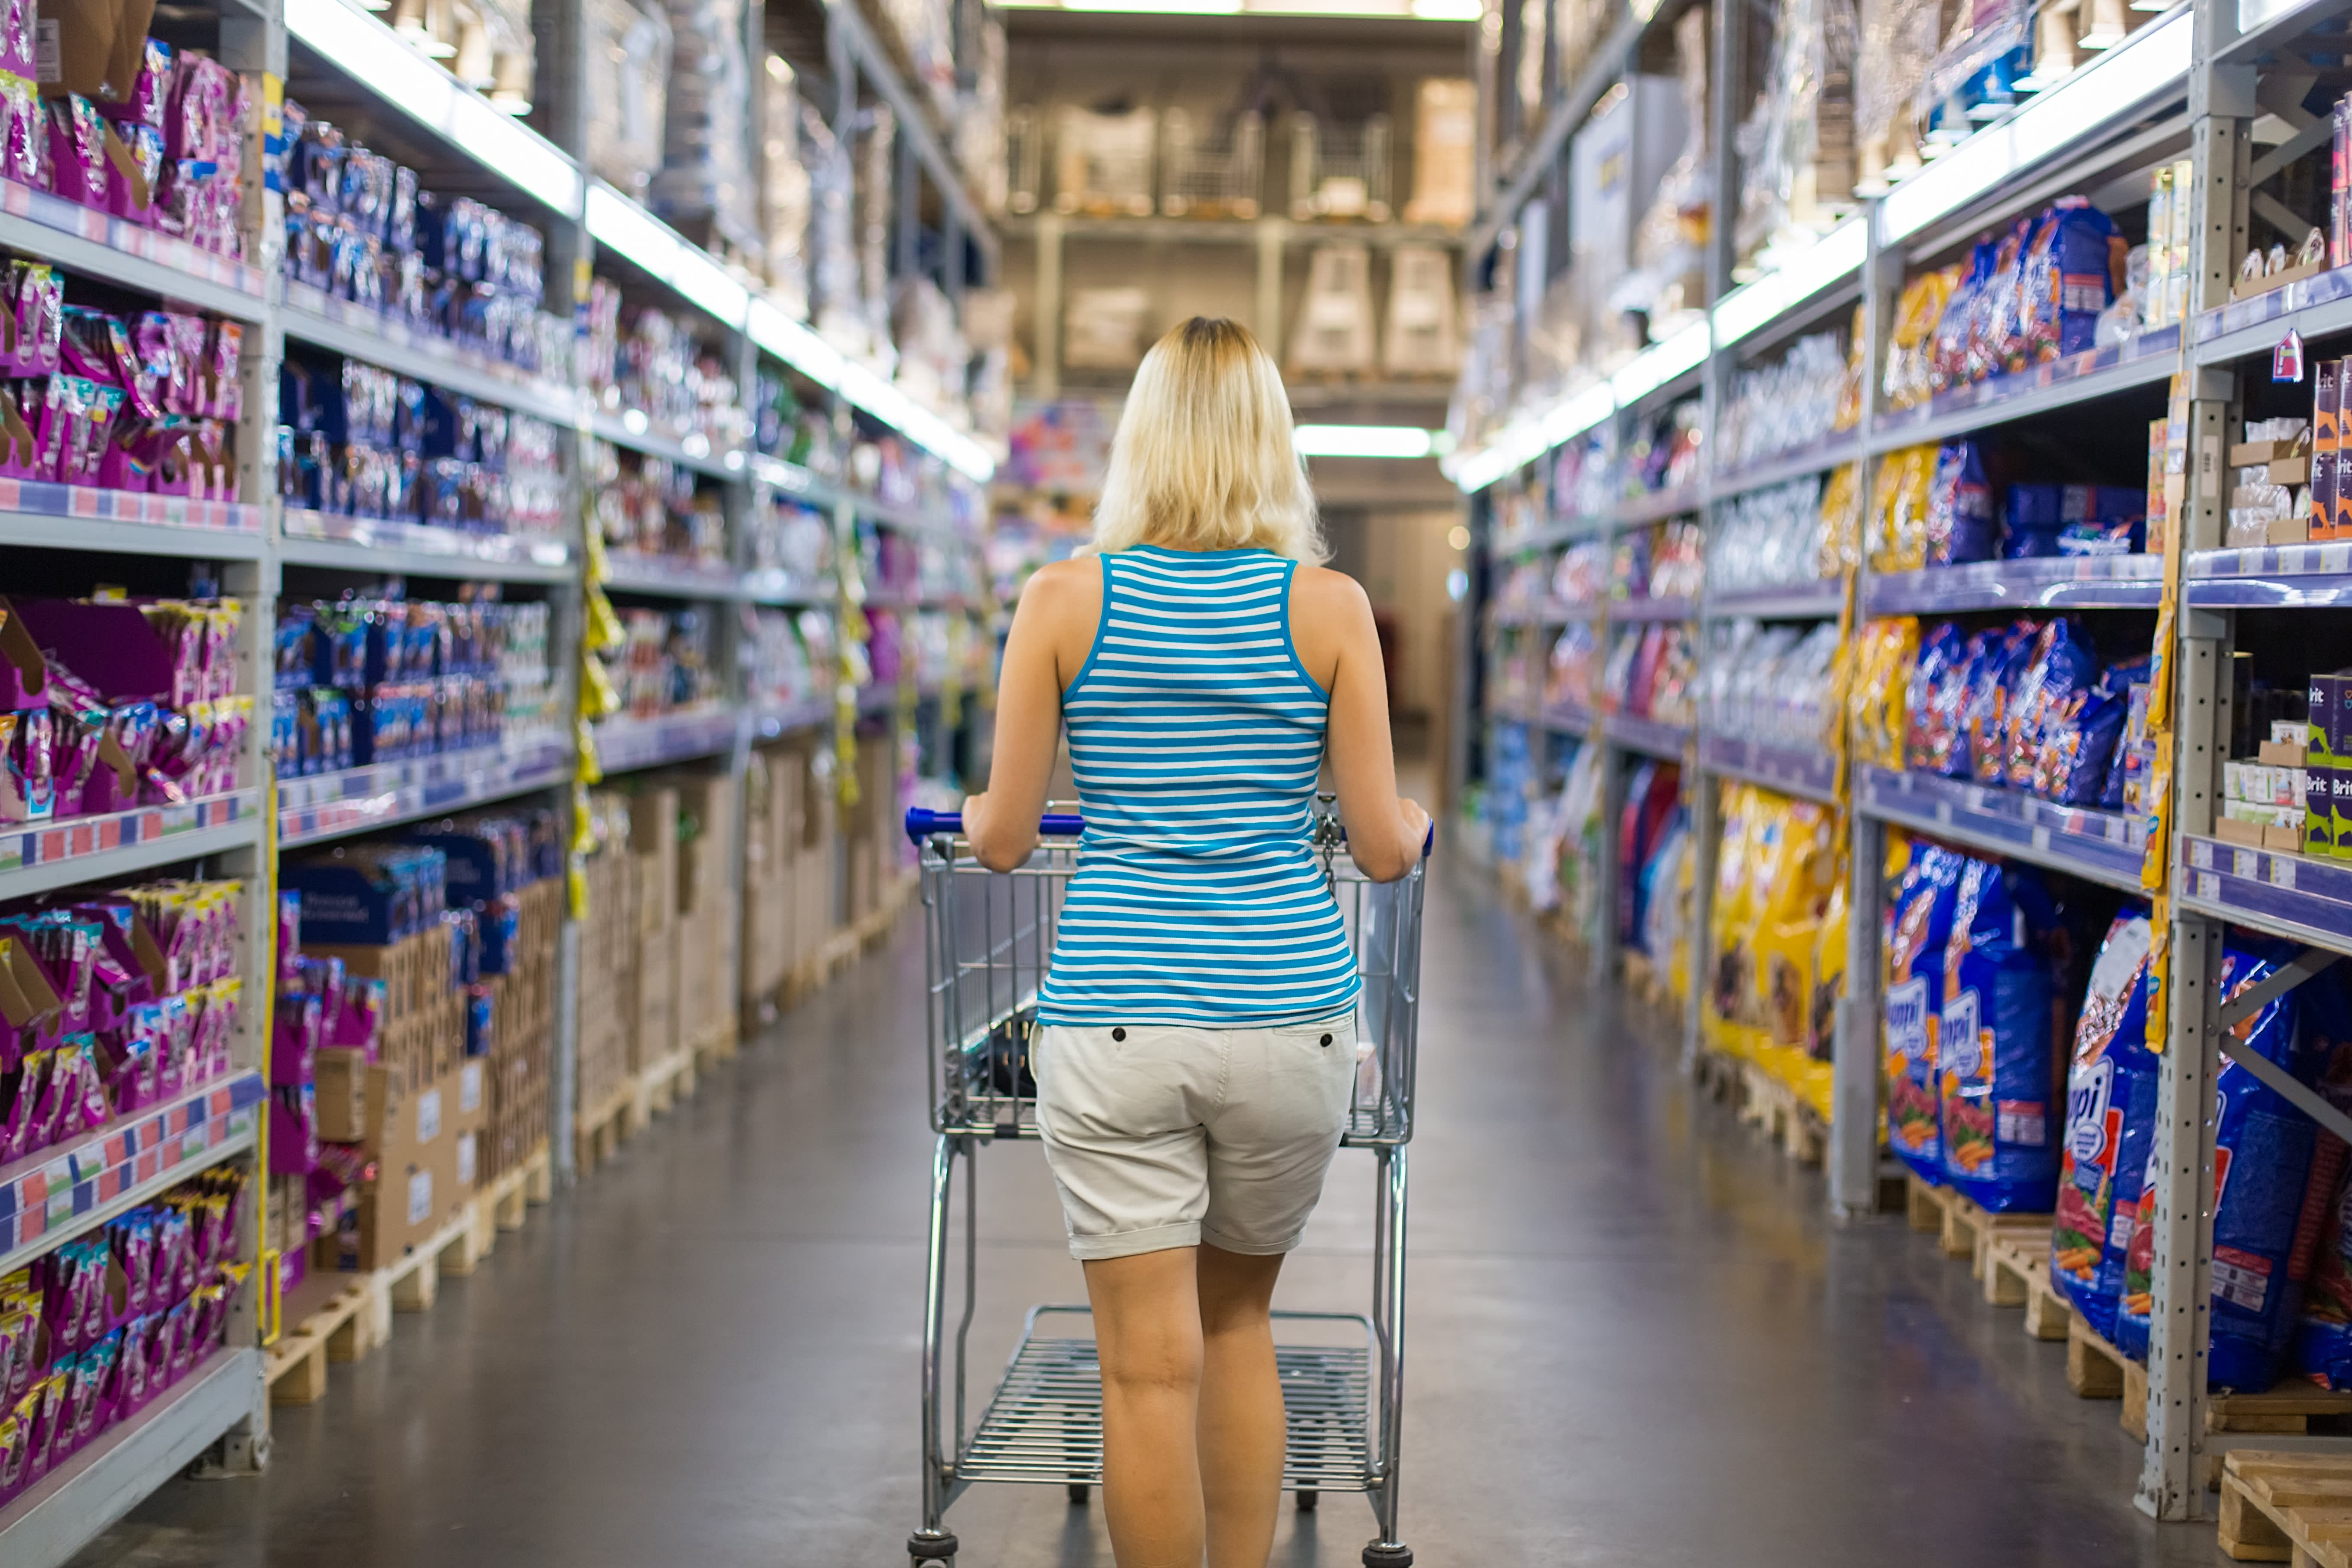 4 places besides Costco where you can save money buying household essentials in bulk